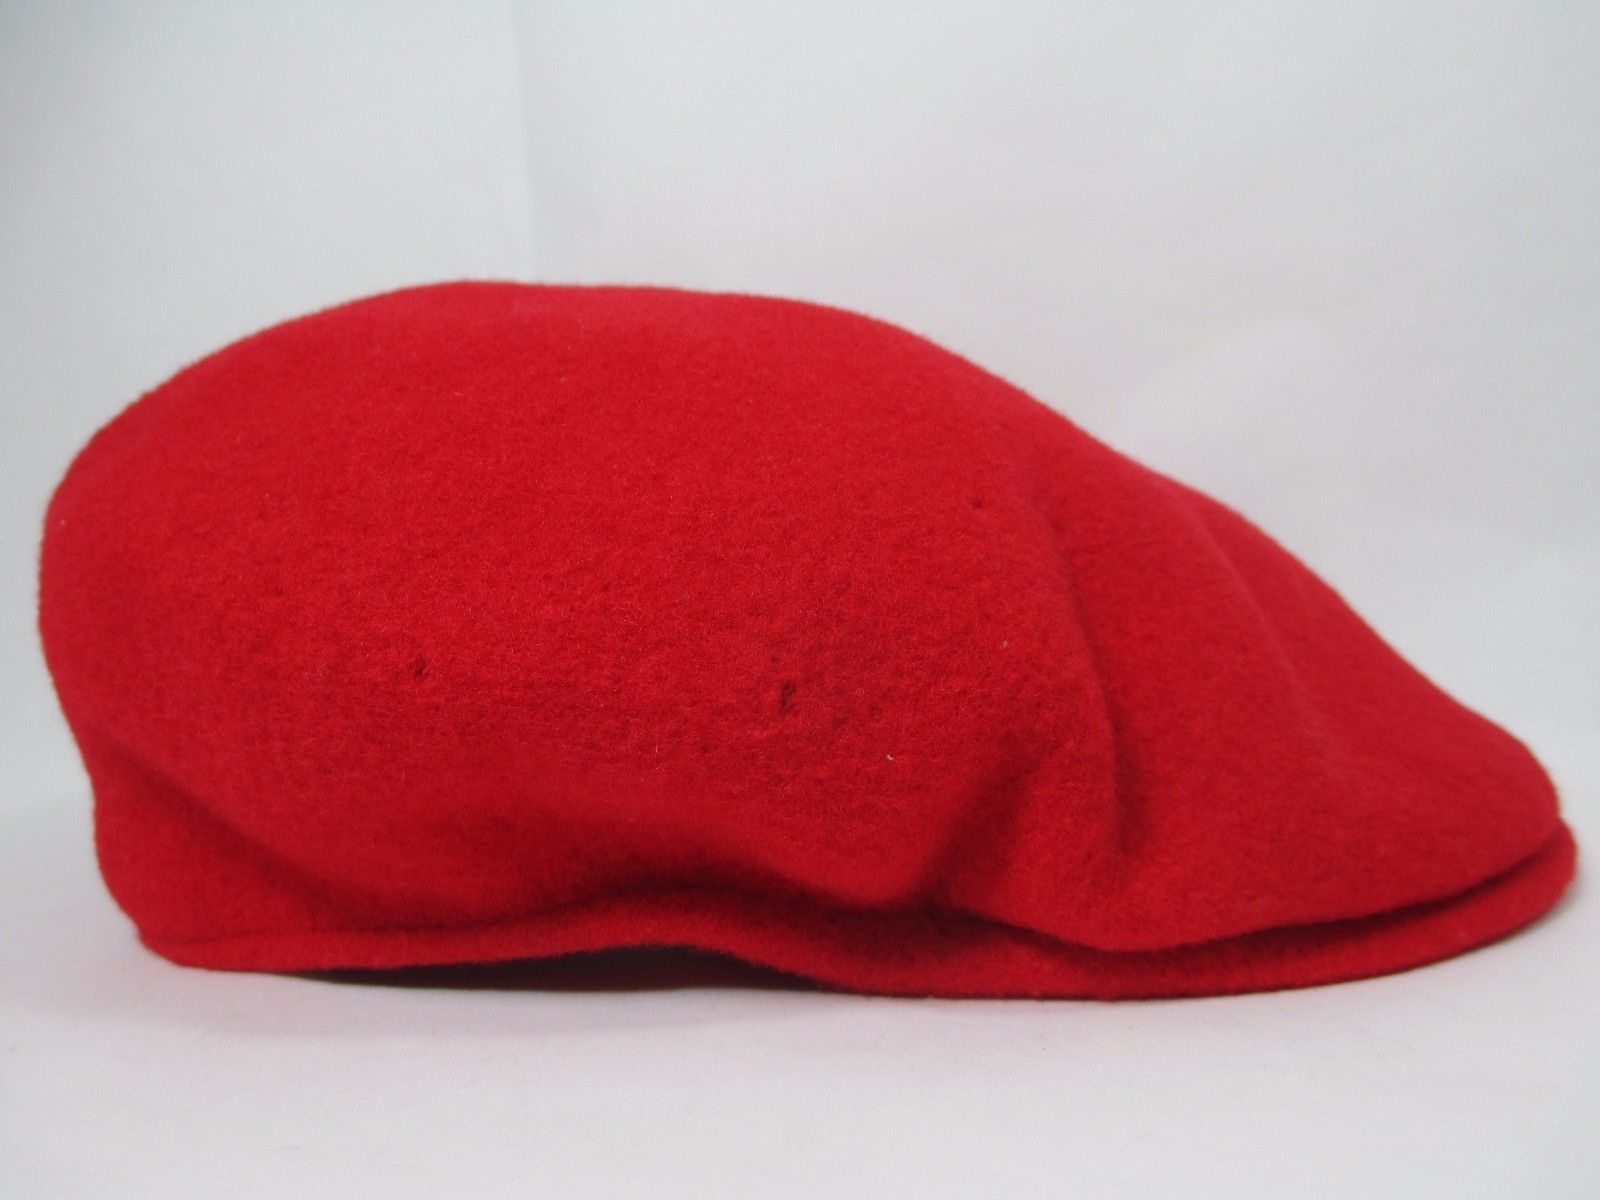 c539ccc6689 S l1600. S l1600. Previous. Vintage Kangol 100% Pure Virgin Wool Red Cap  Newsboys Cabbie Hat Size S England